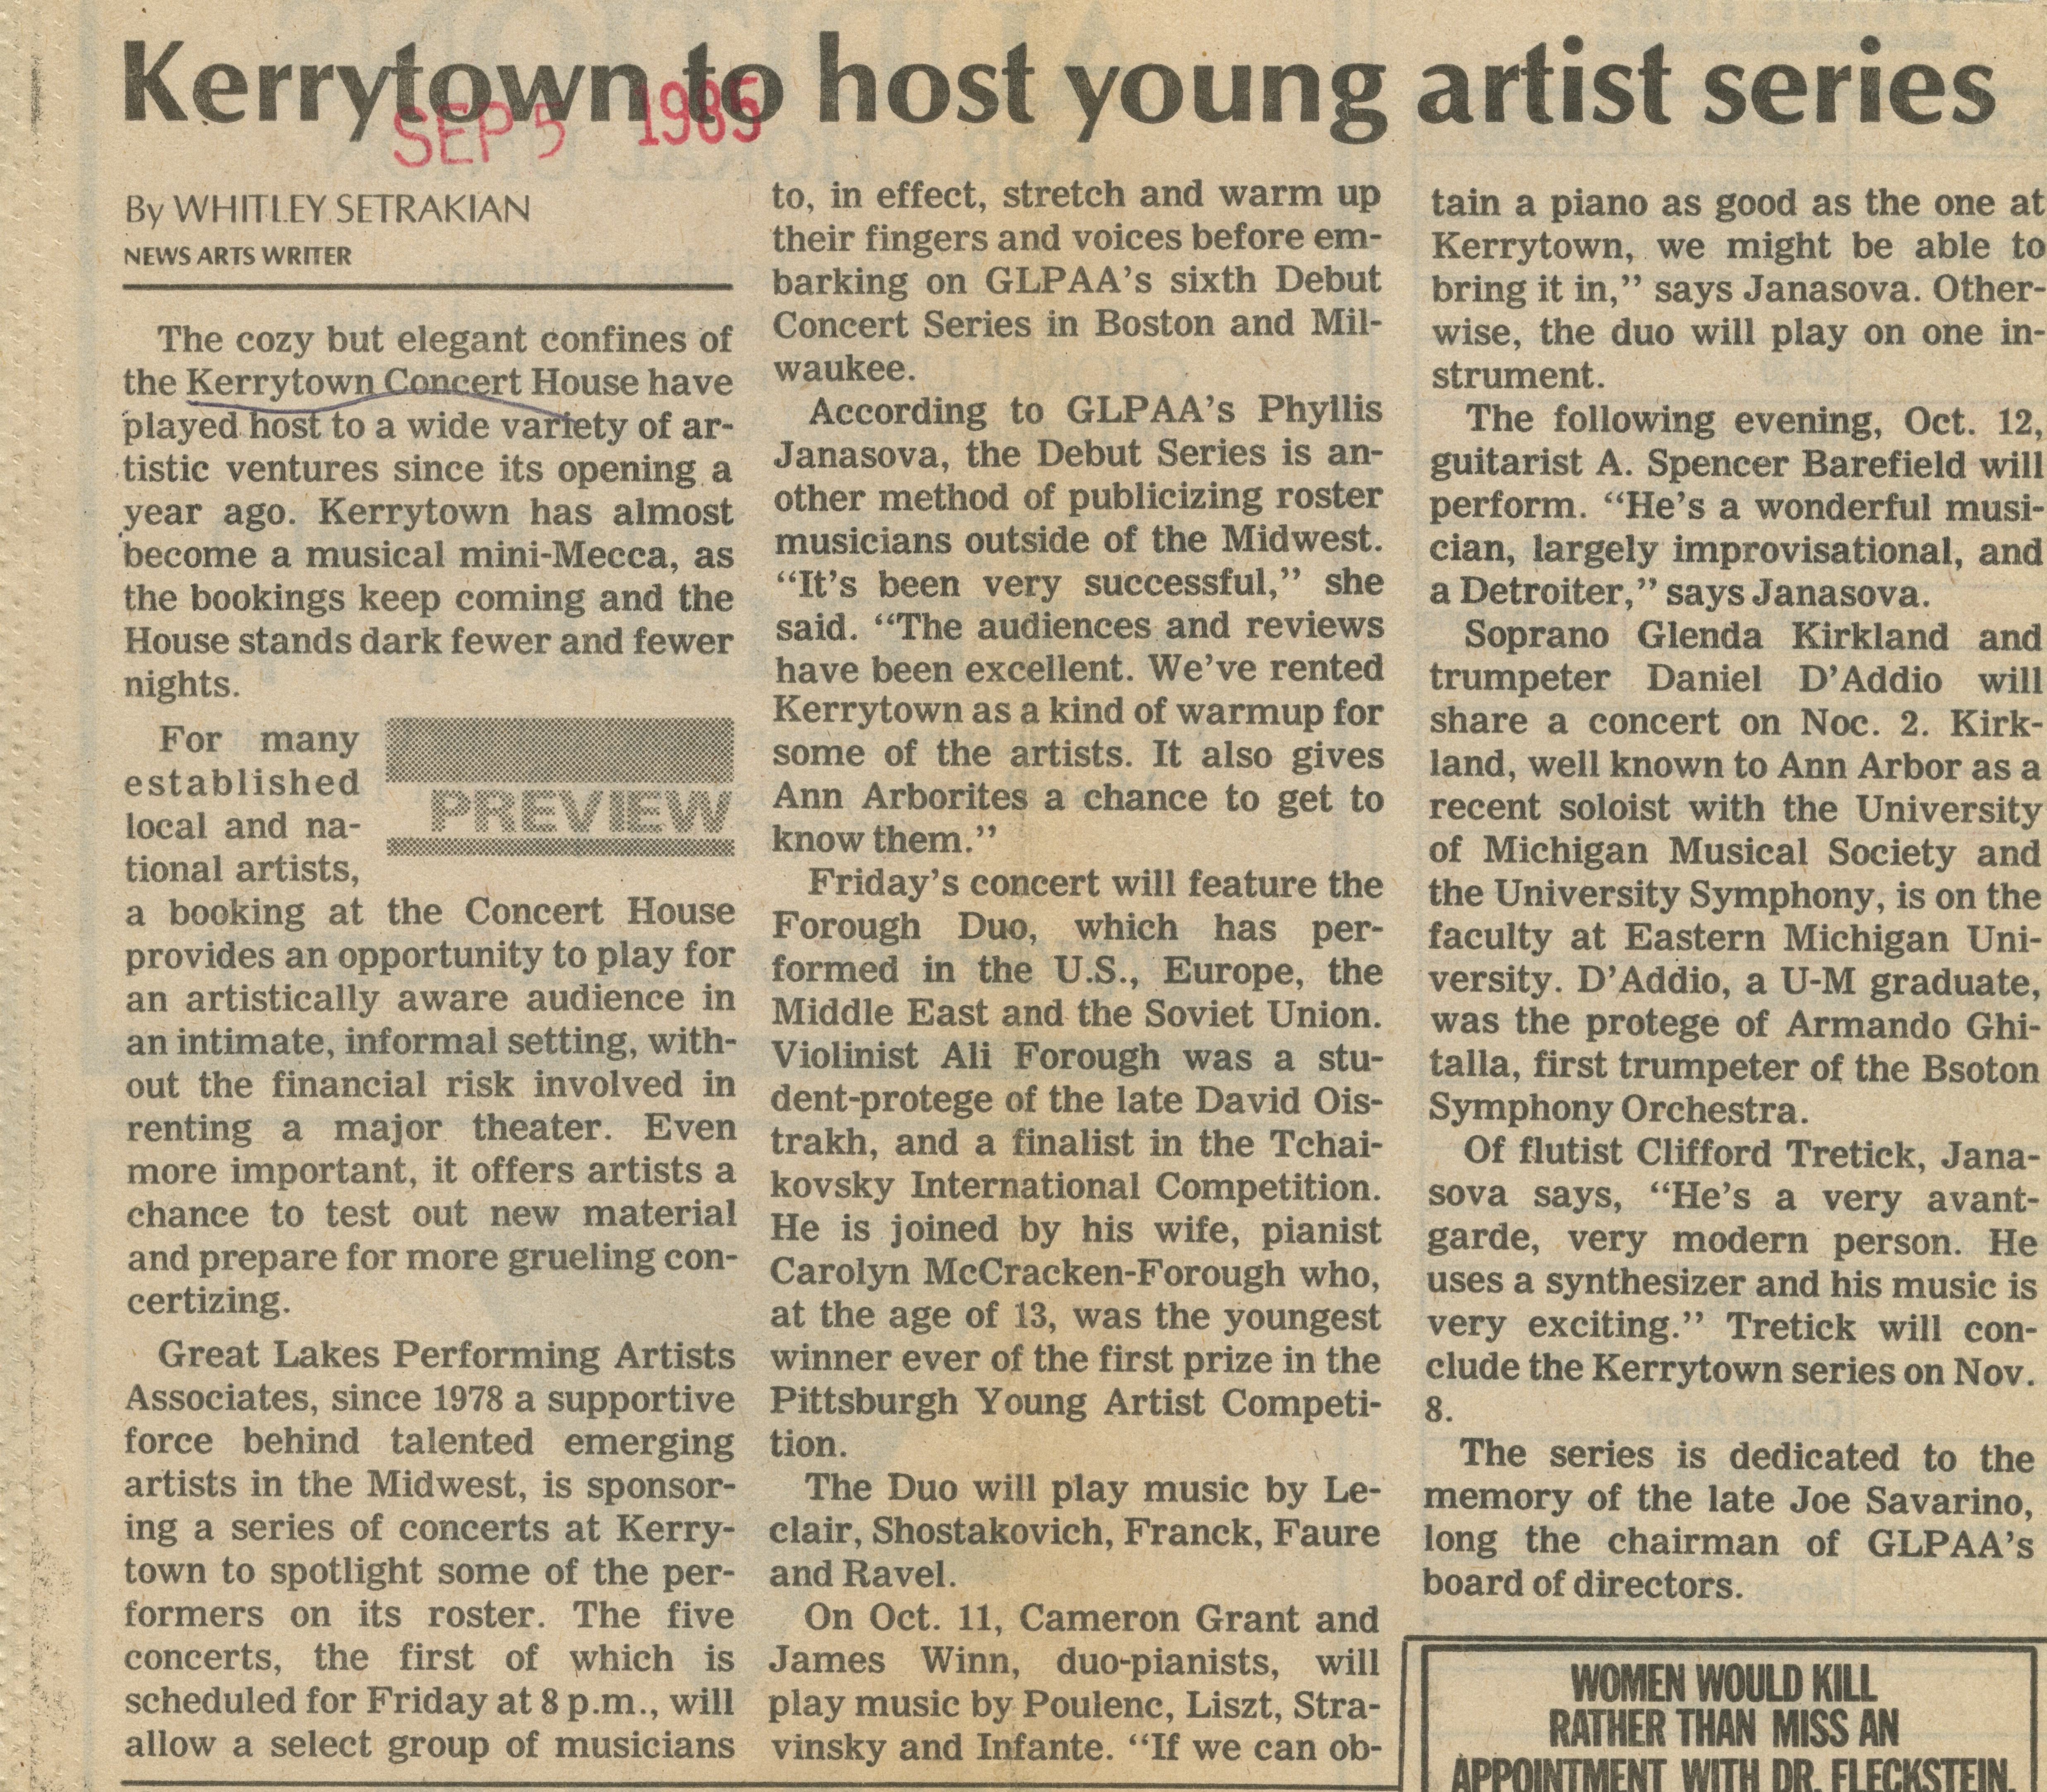 Kerrytown to host young artist series image